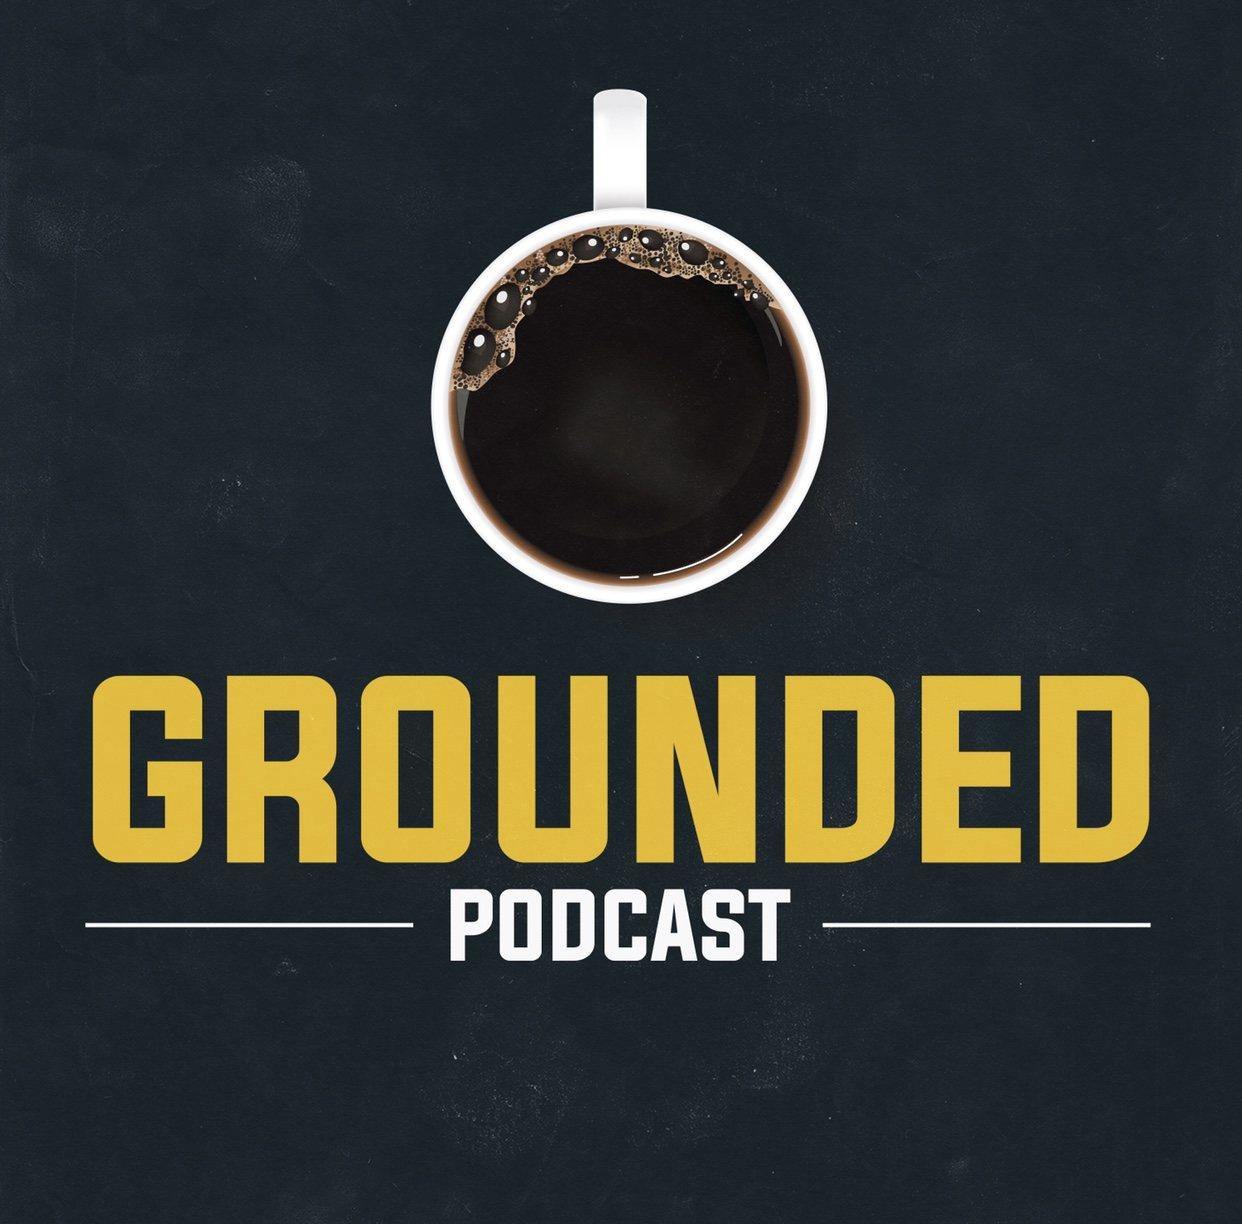 The Grounded Podcast